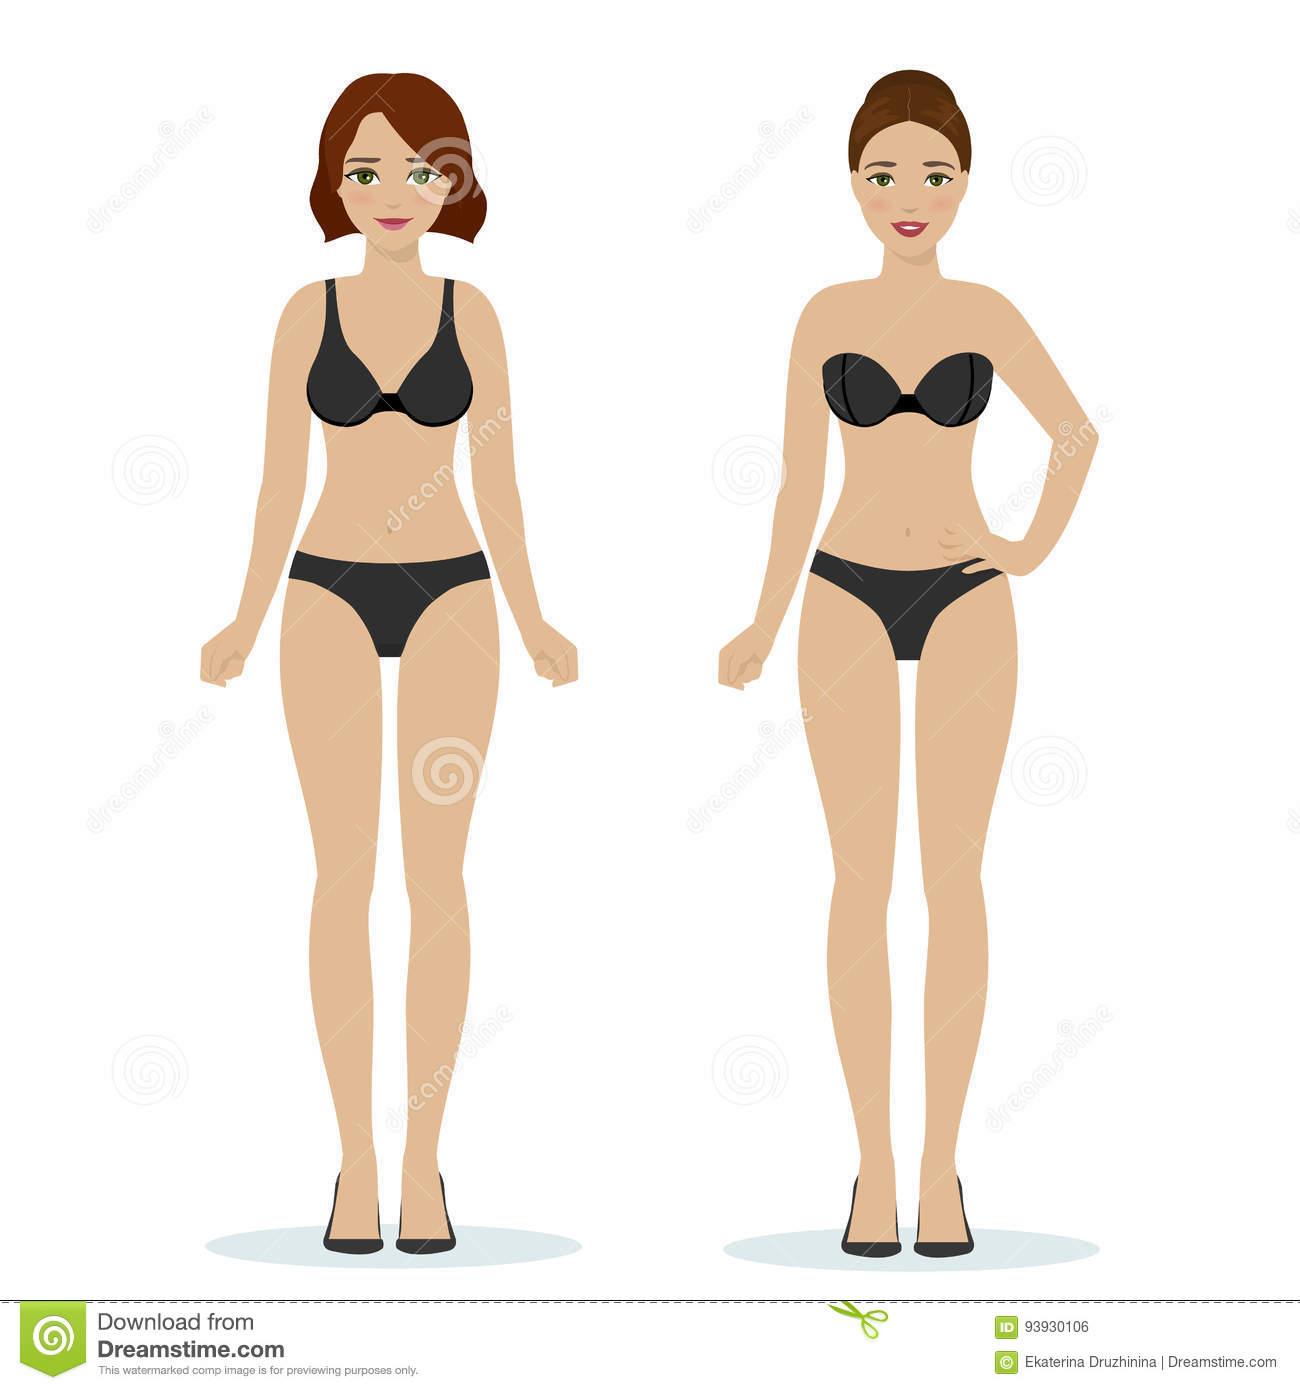 Weight Gain After Gastric Sleeve How to